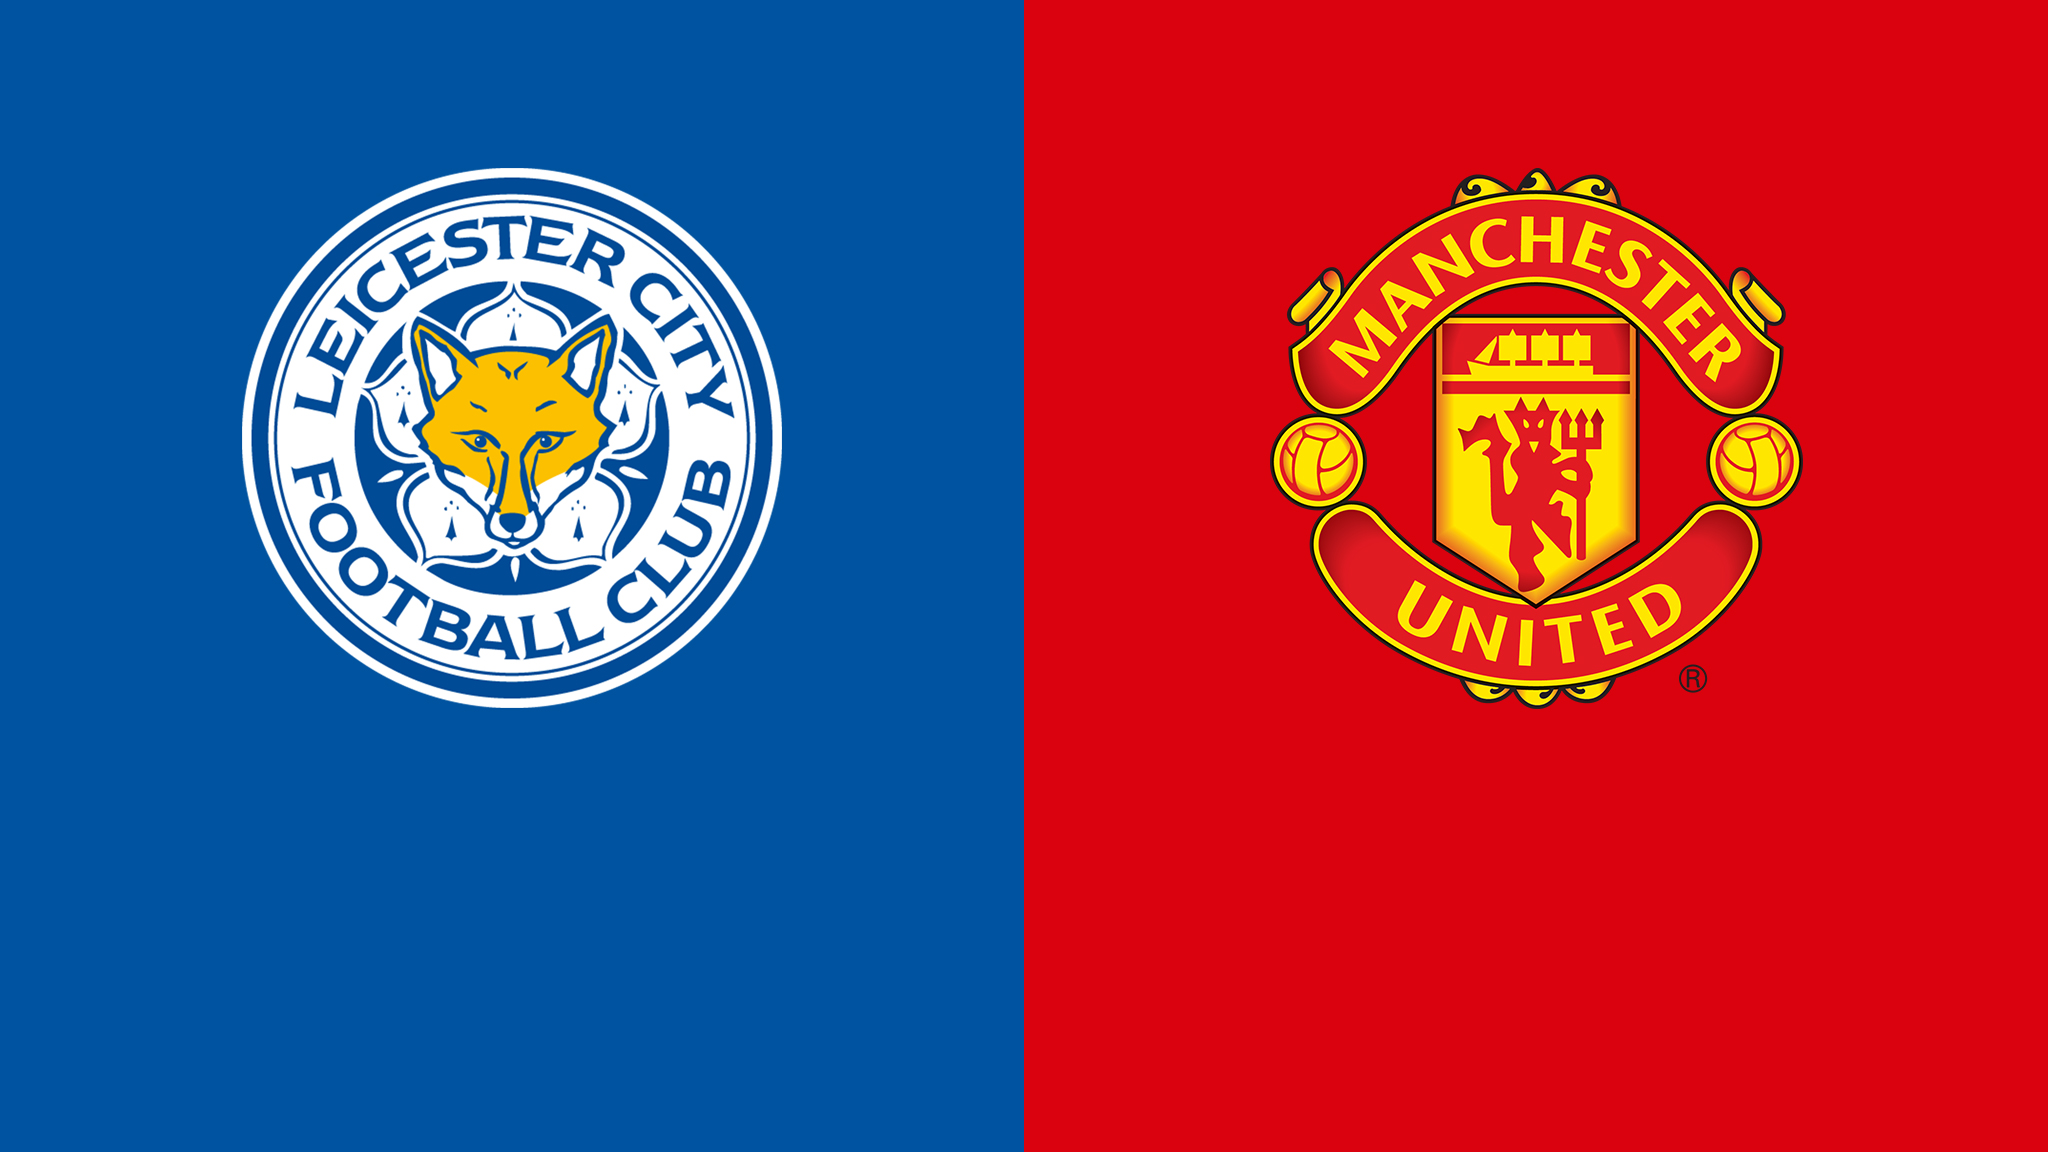 Leicester City Vs Manchester United Preview The United